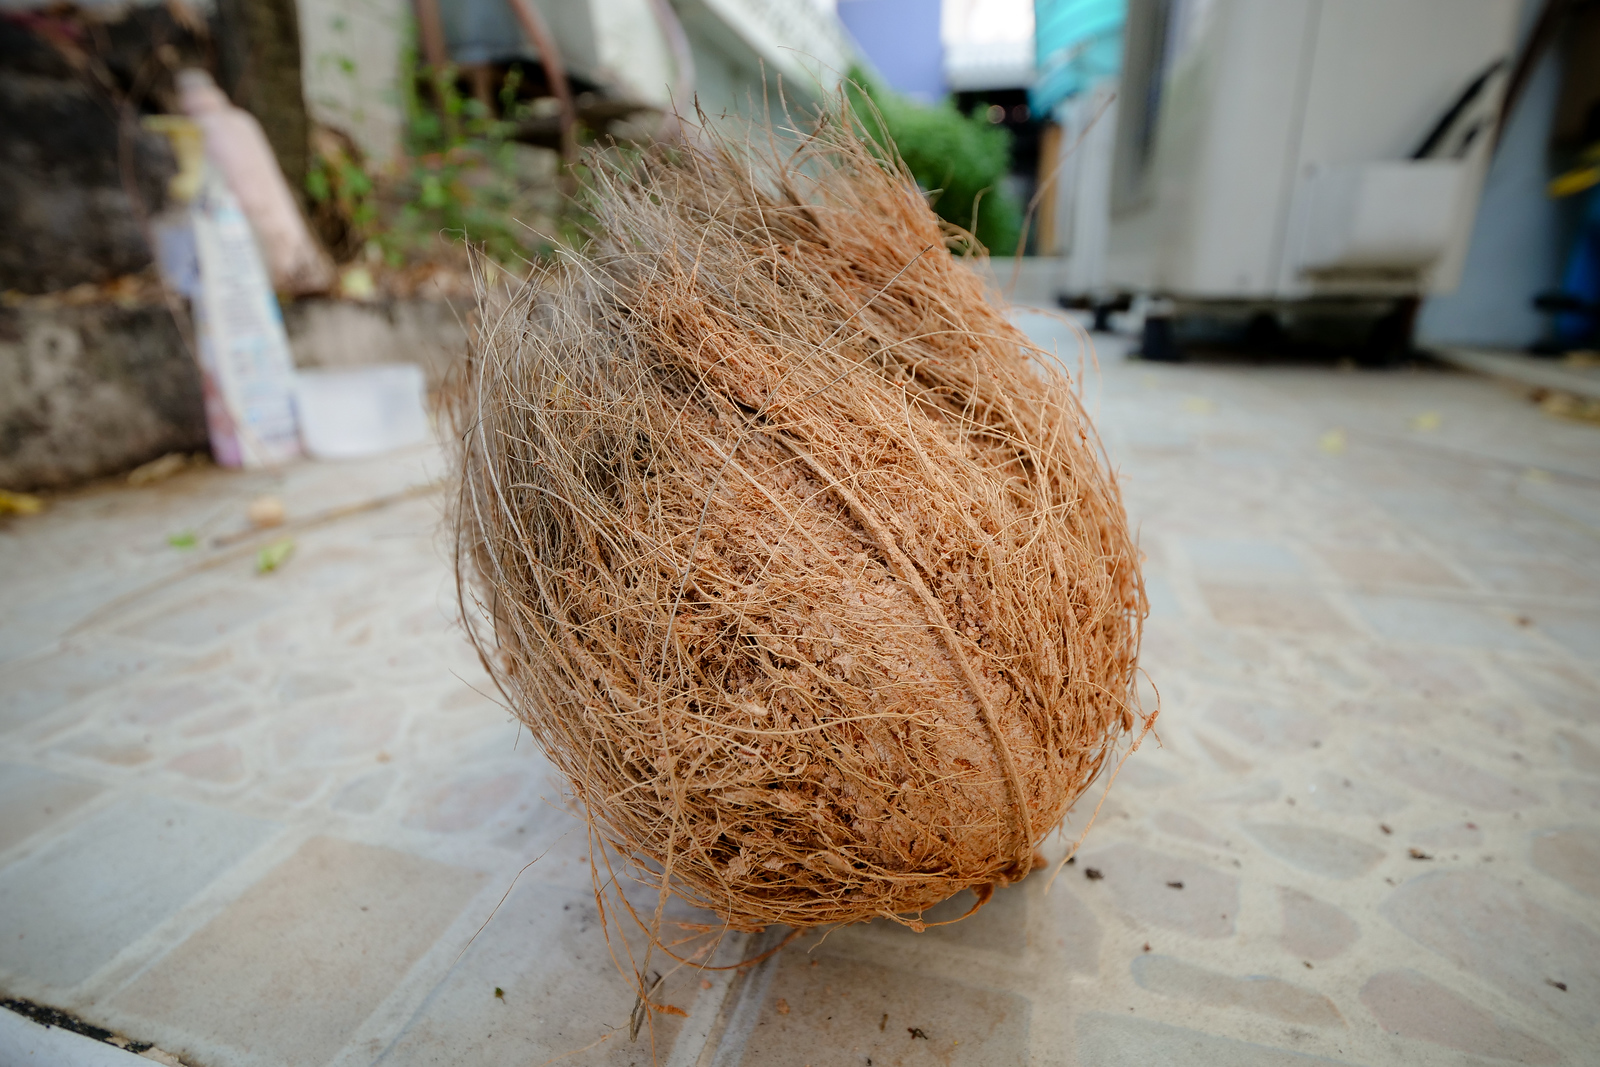 Tough hairs surround a mature coconut